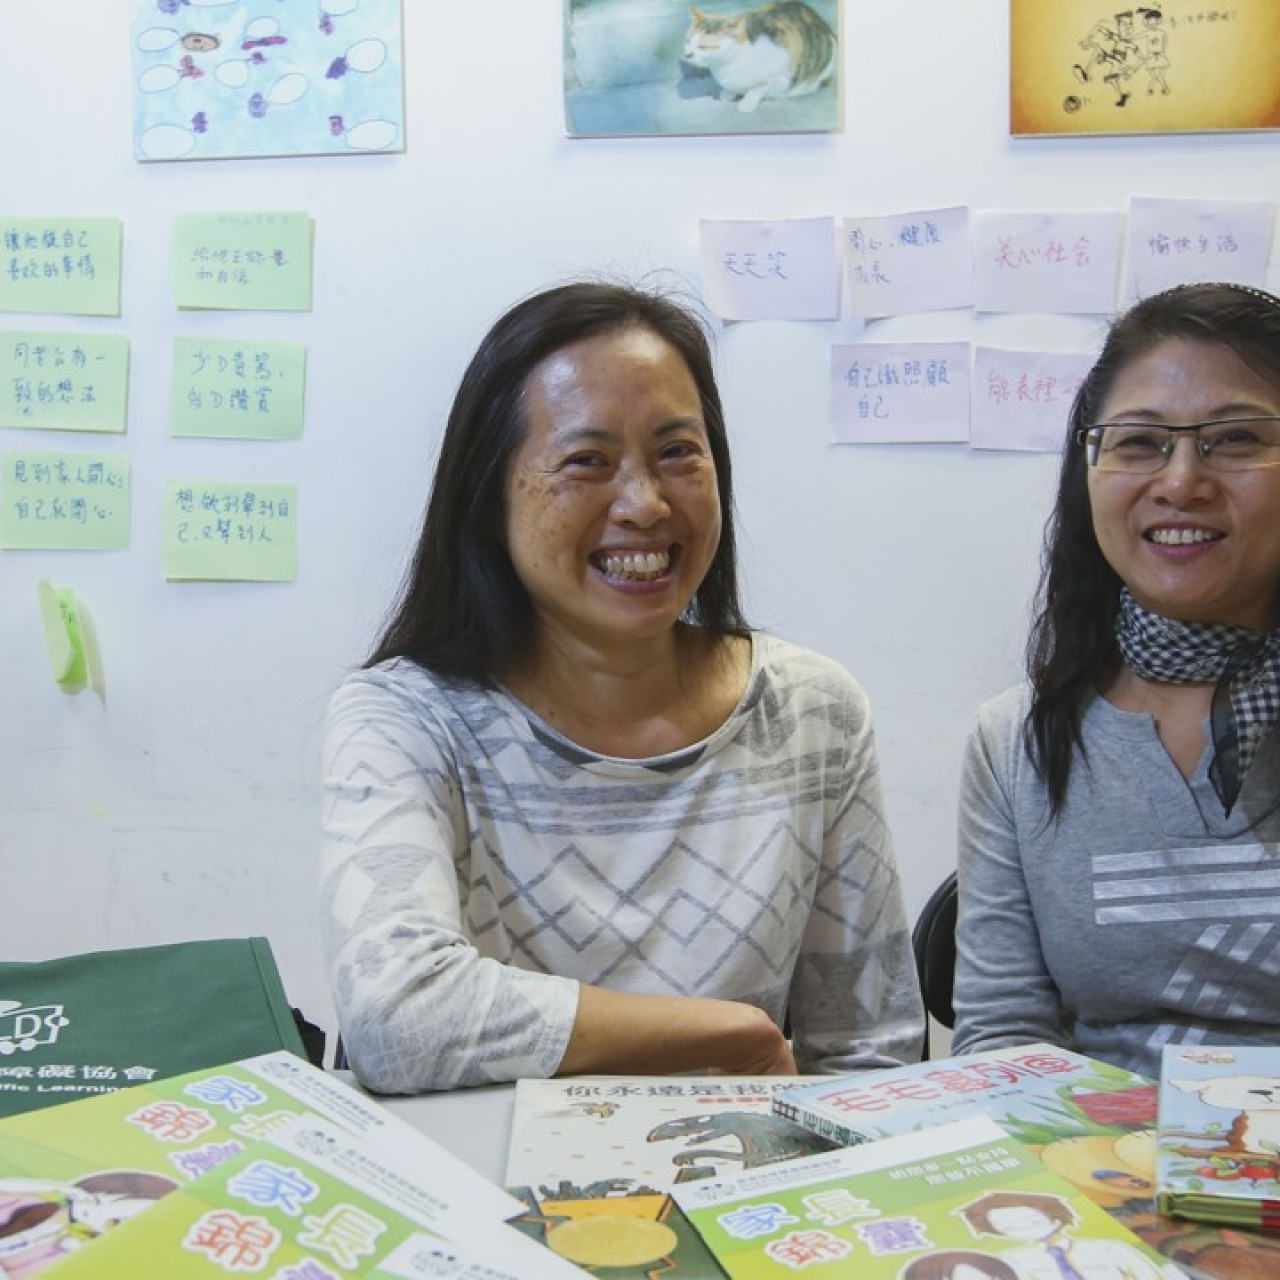 Hong Kong parents of children with learning disabilities find new